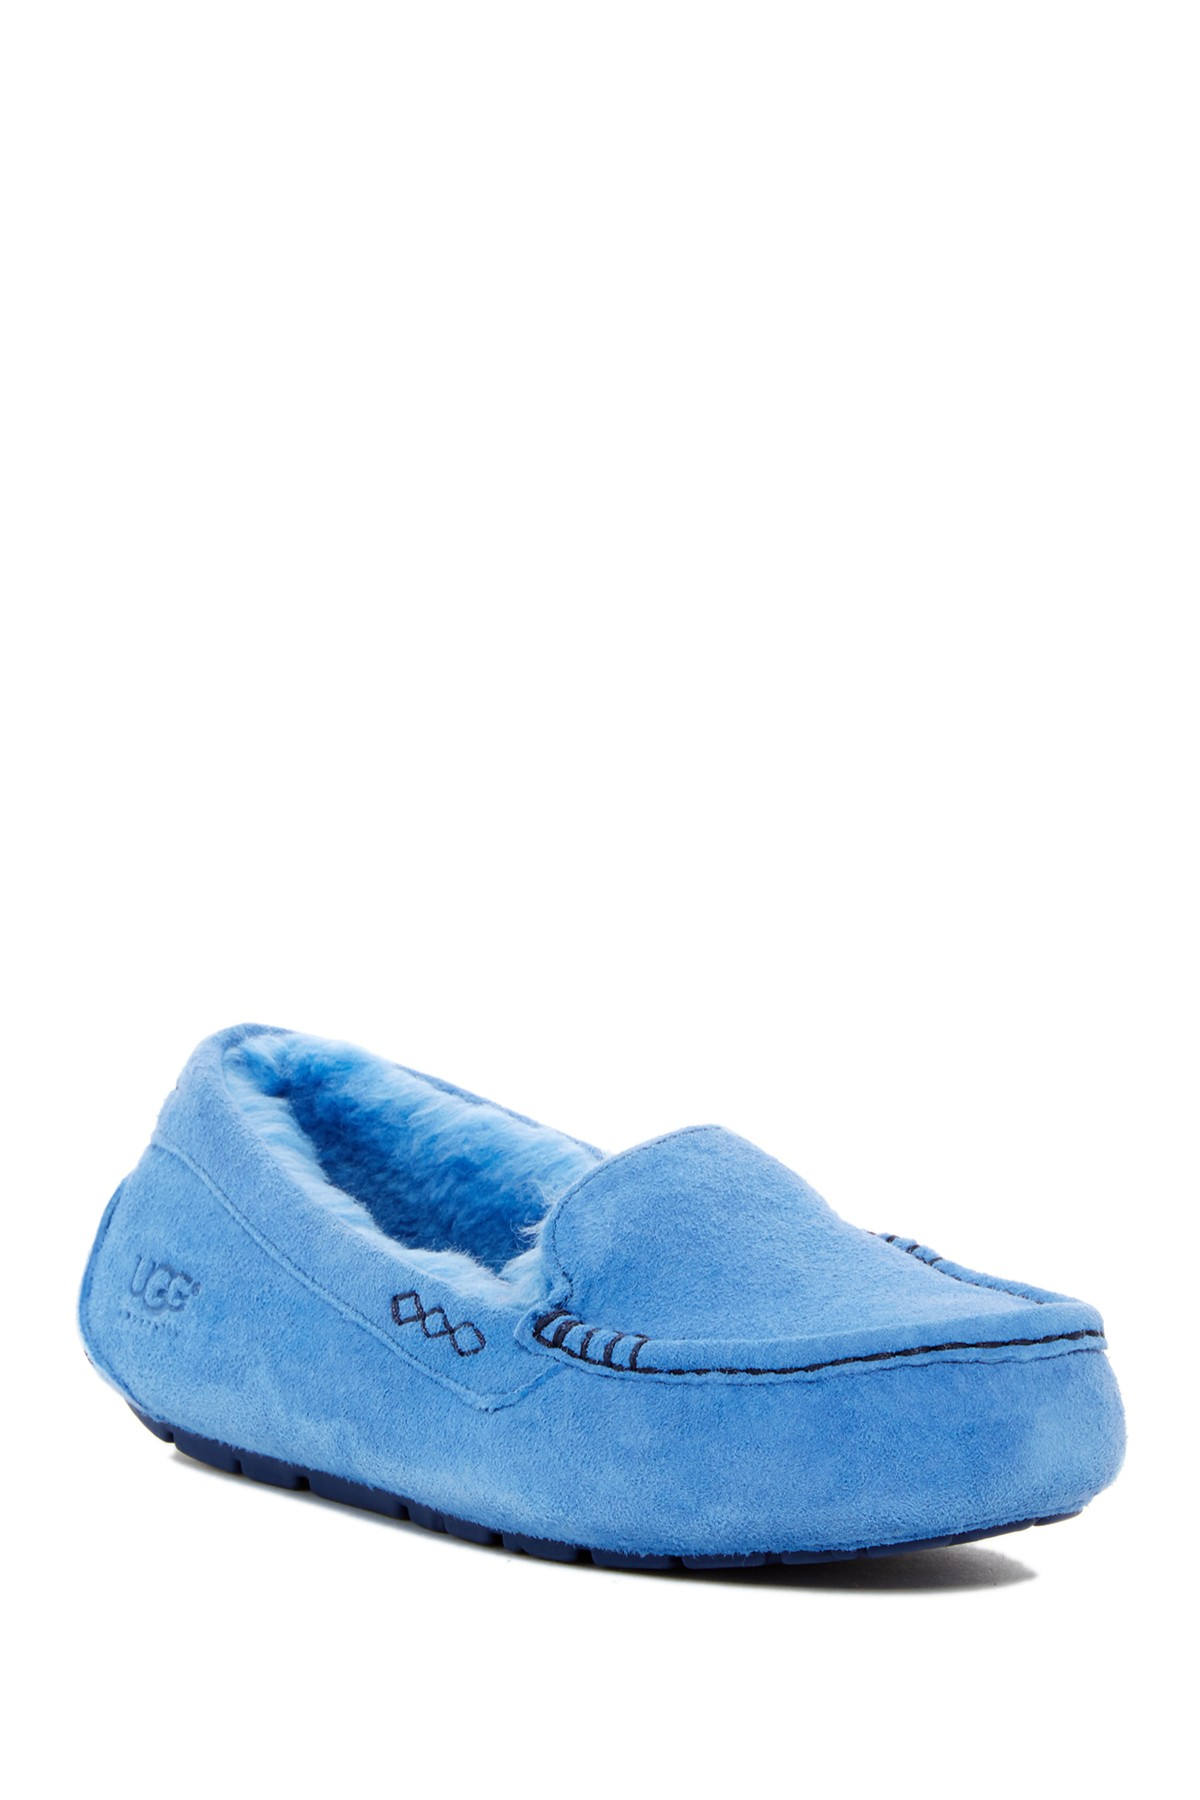 5c5088a1659 Uggpure Slippers - cheap watches mgc-gas.com